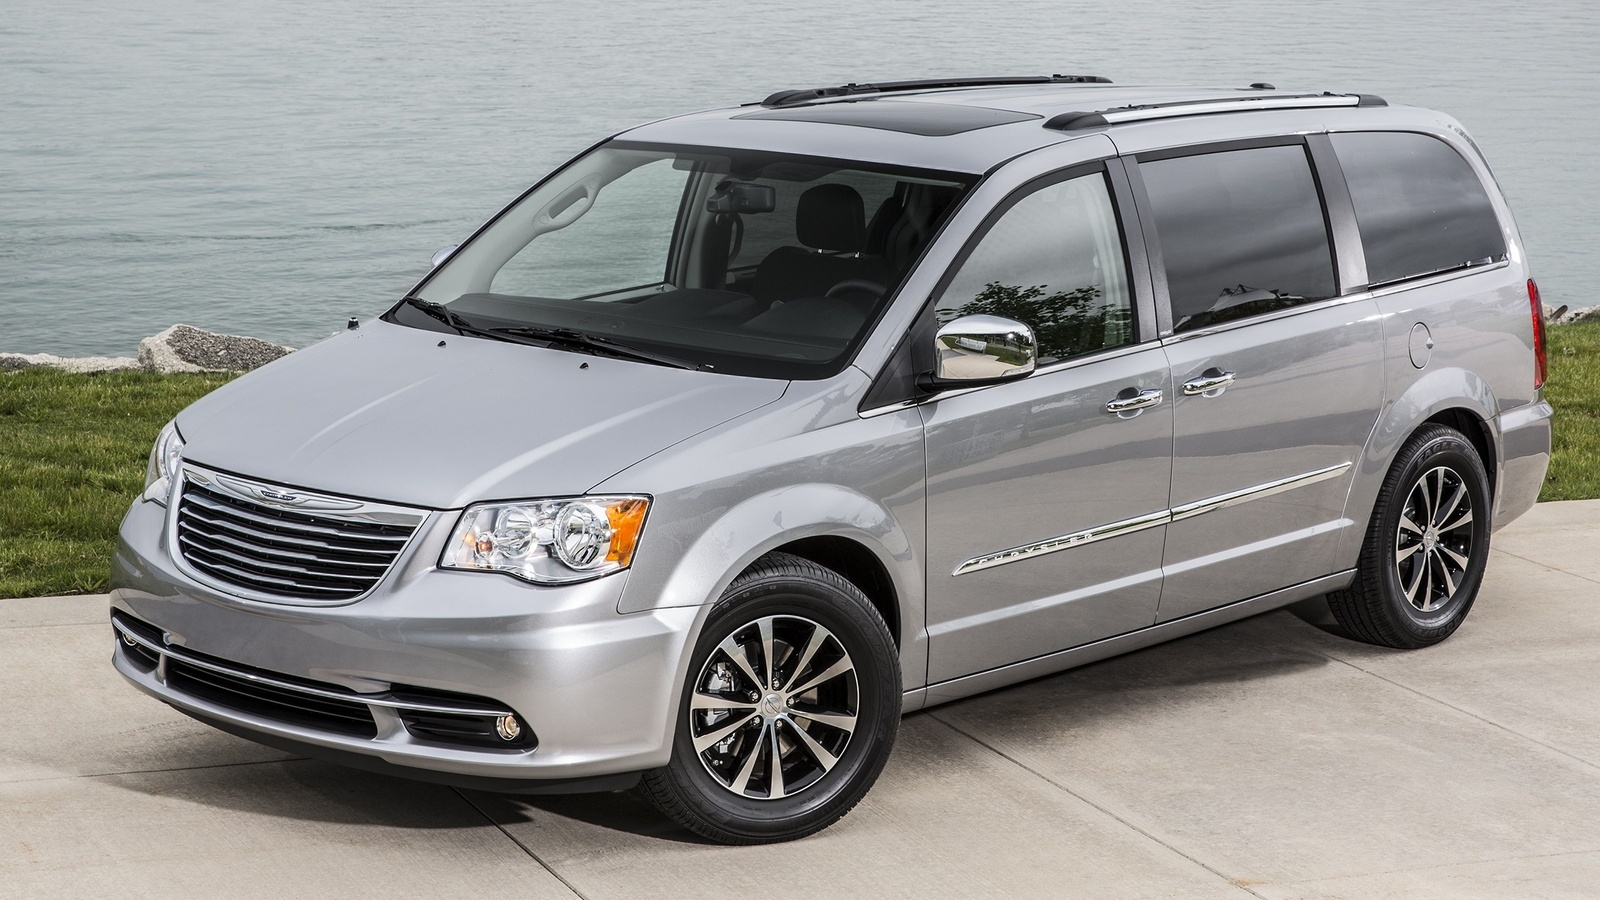 2015 chrysler town country overview cargurus. Black Bedroom Furniture Sets. Home Design Ideas